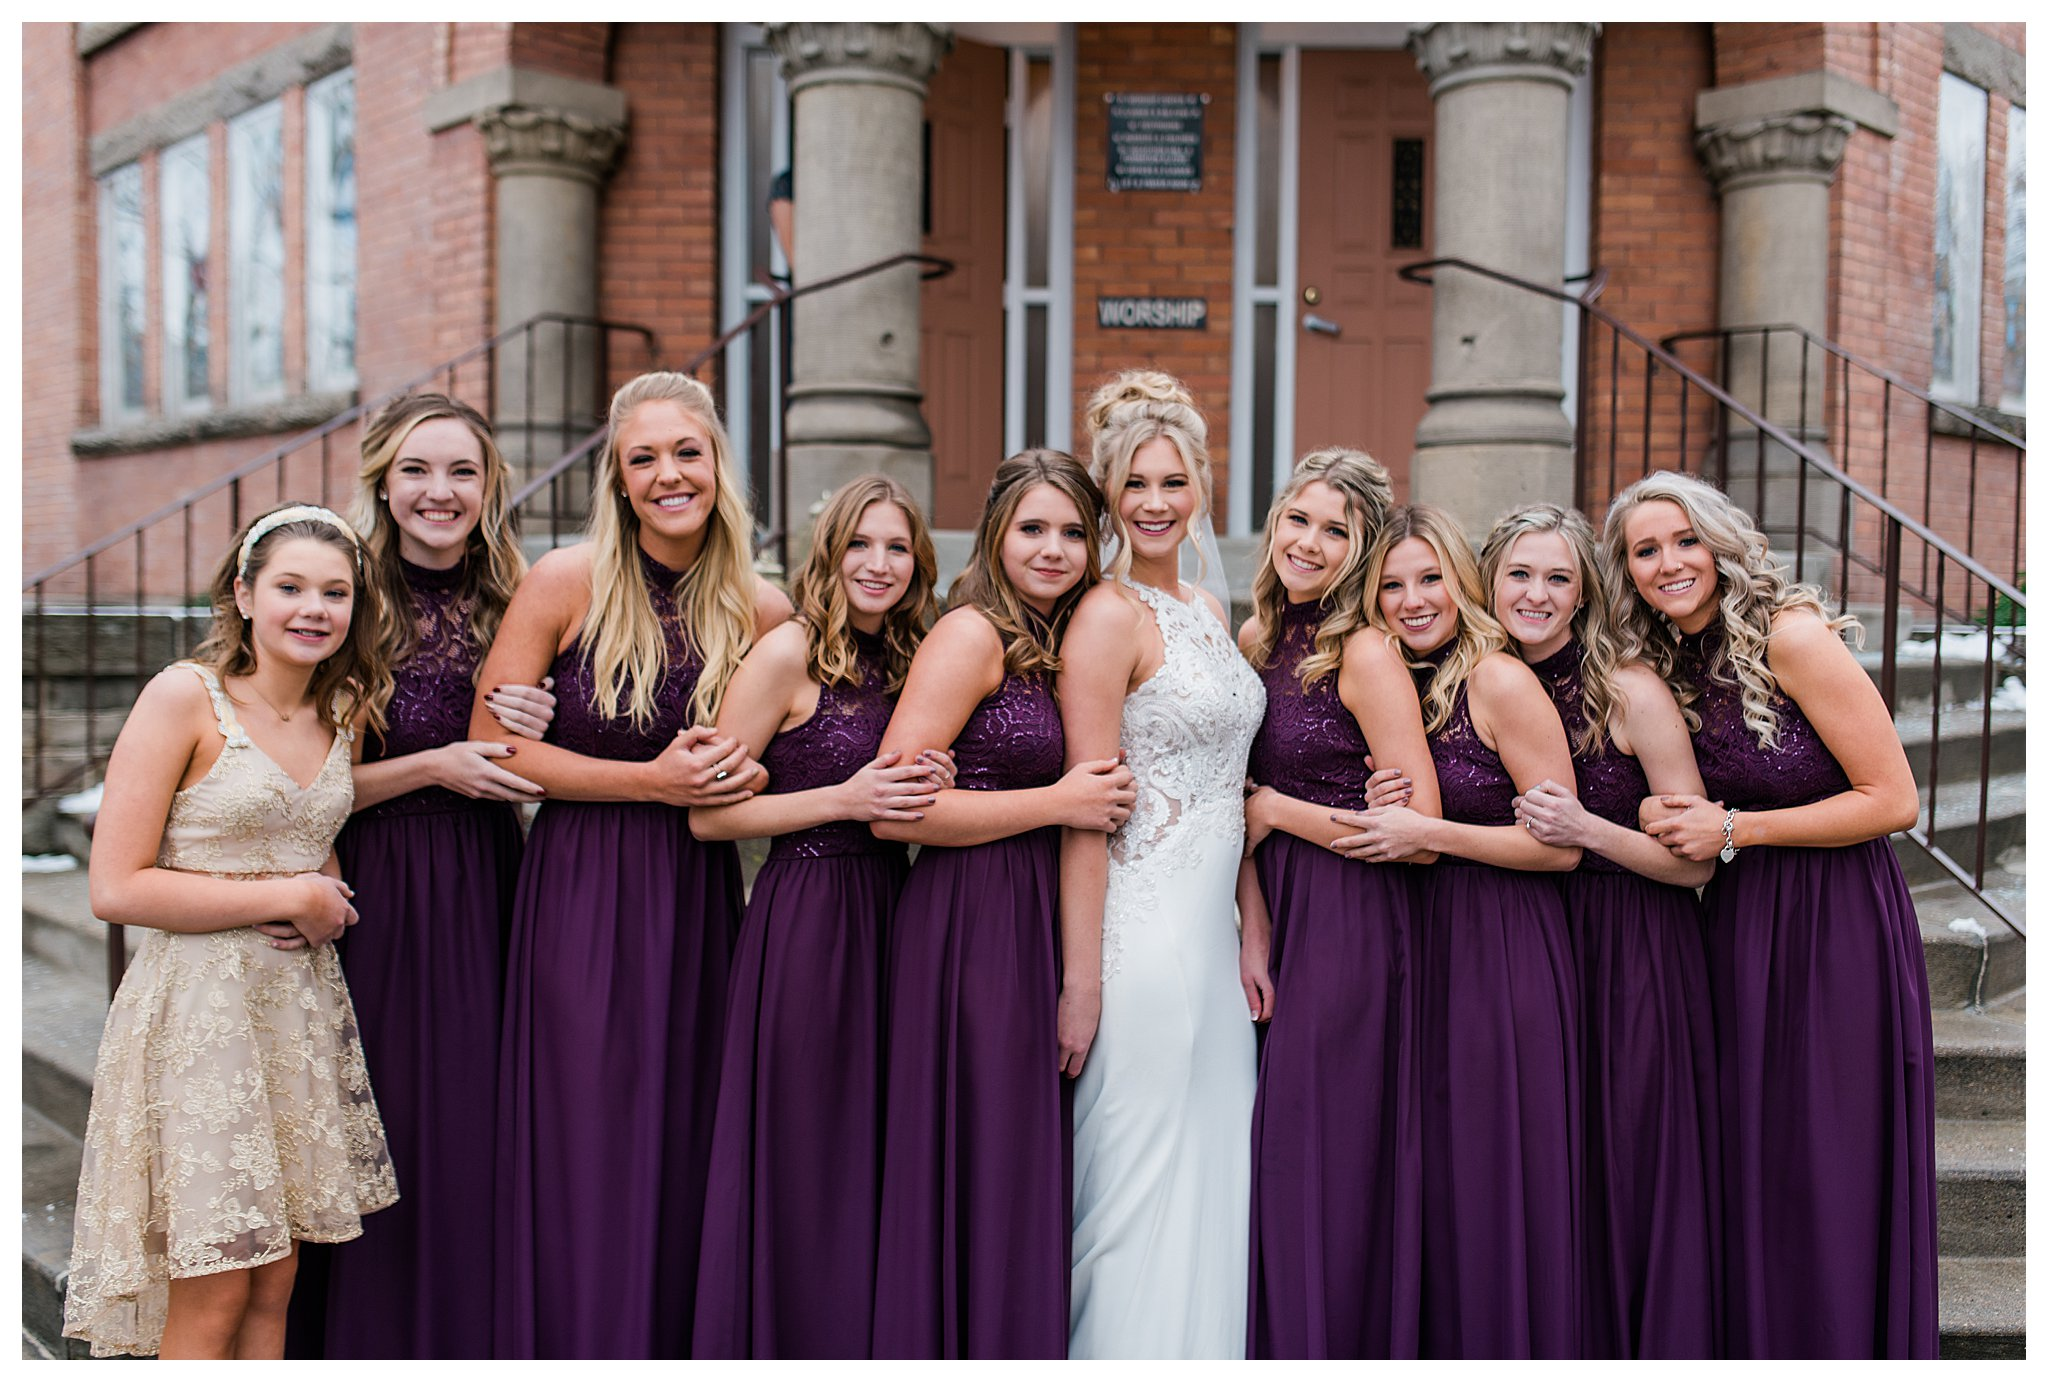 Boise Wedding Photographer, Idaho Wedding Photographer, candlelit wedding, Father daughter first look, first look ideas, plum and gold wedding colors, winter wedding, Indoor Photography, lace wedding dress, wedding updo, sentimental wedding ideas, documentary wedding photographer, wedding photography, large group wedding, bridesmaid posing ideas